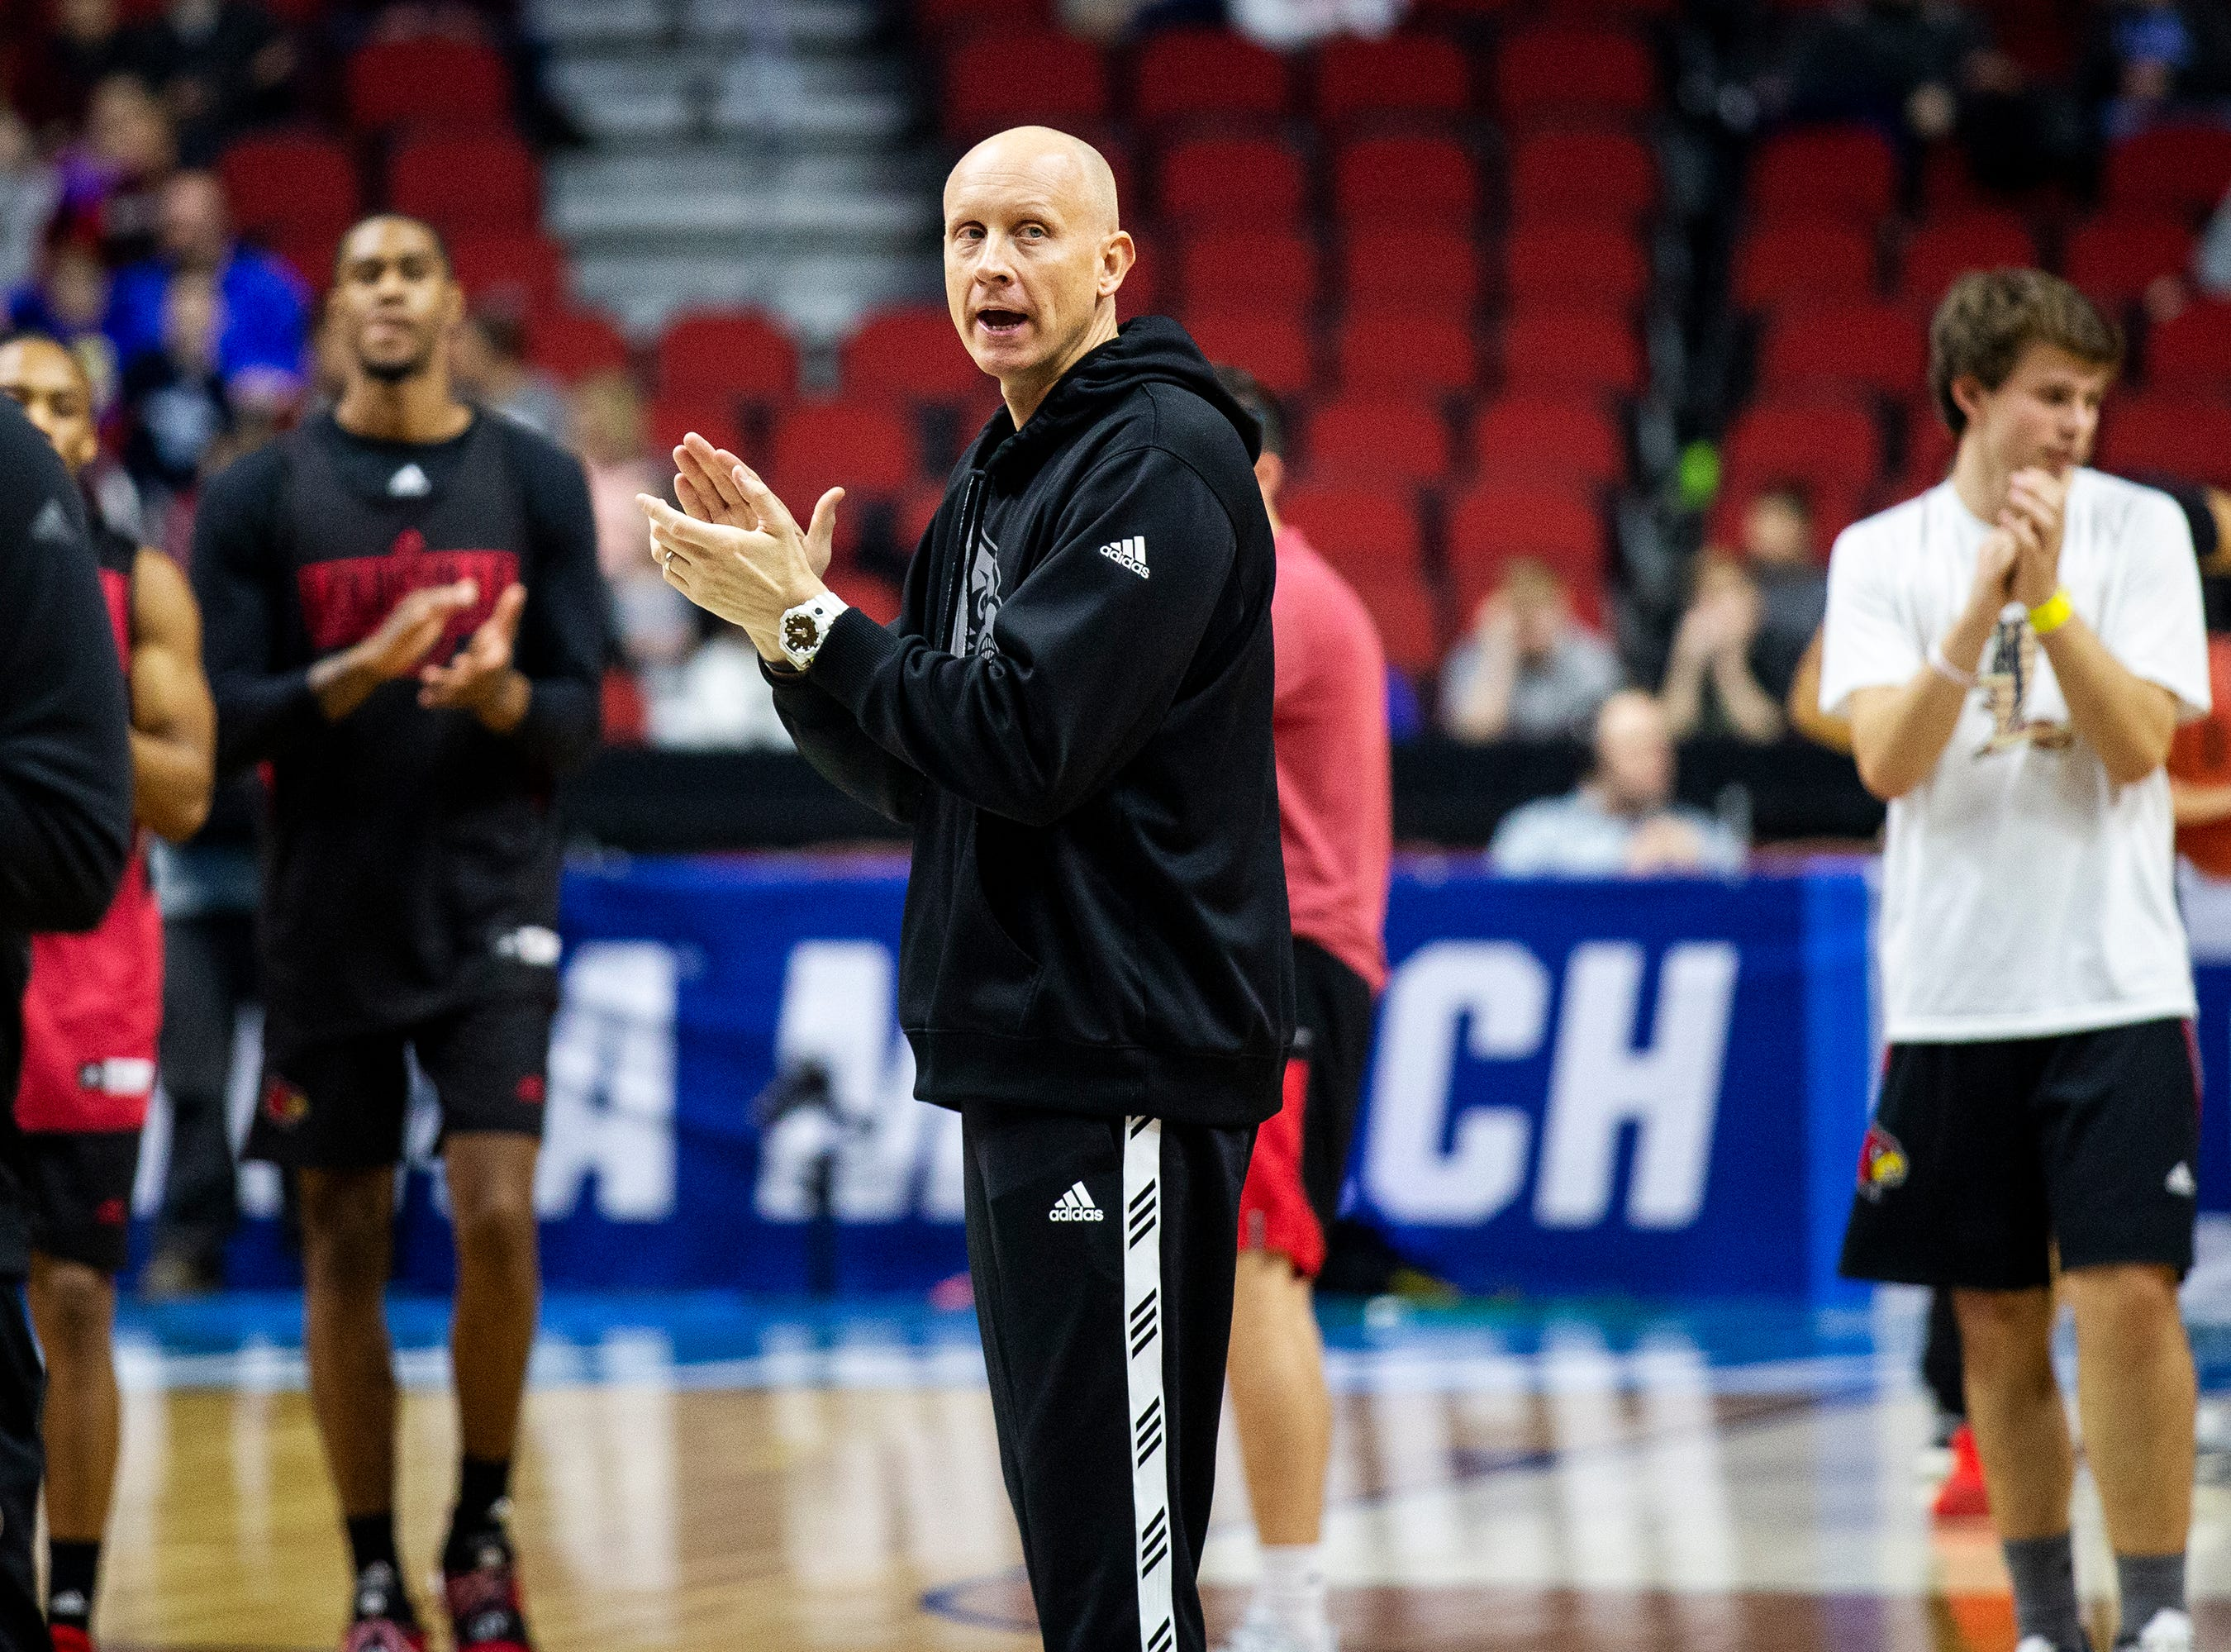 Louisville Head Coah Chris Mack calls the team over to a huddle during Louisville's open practice before the first round of the NCAA Men's Basketball Tournament on Wednesday, March 20, 2019, at Wells Fargo Arena in Des Moines, Iowa.